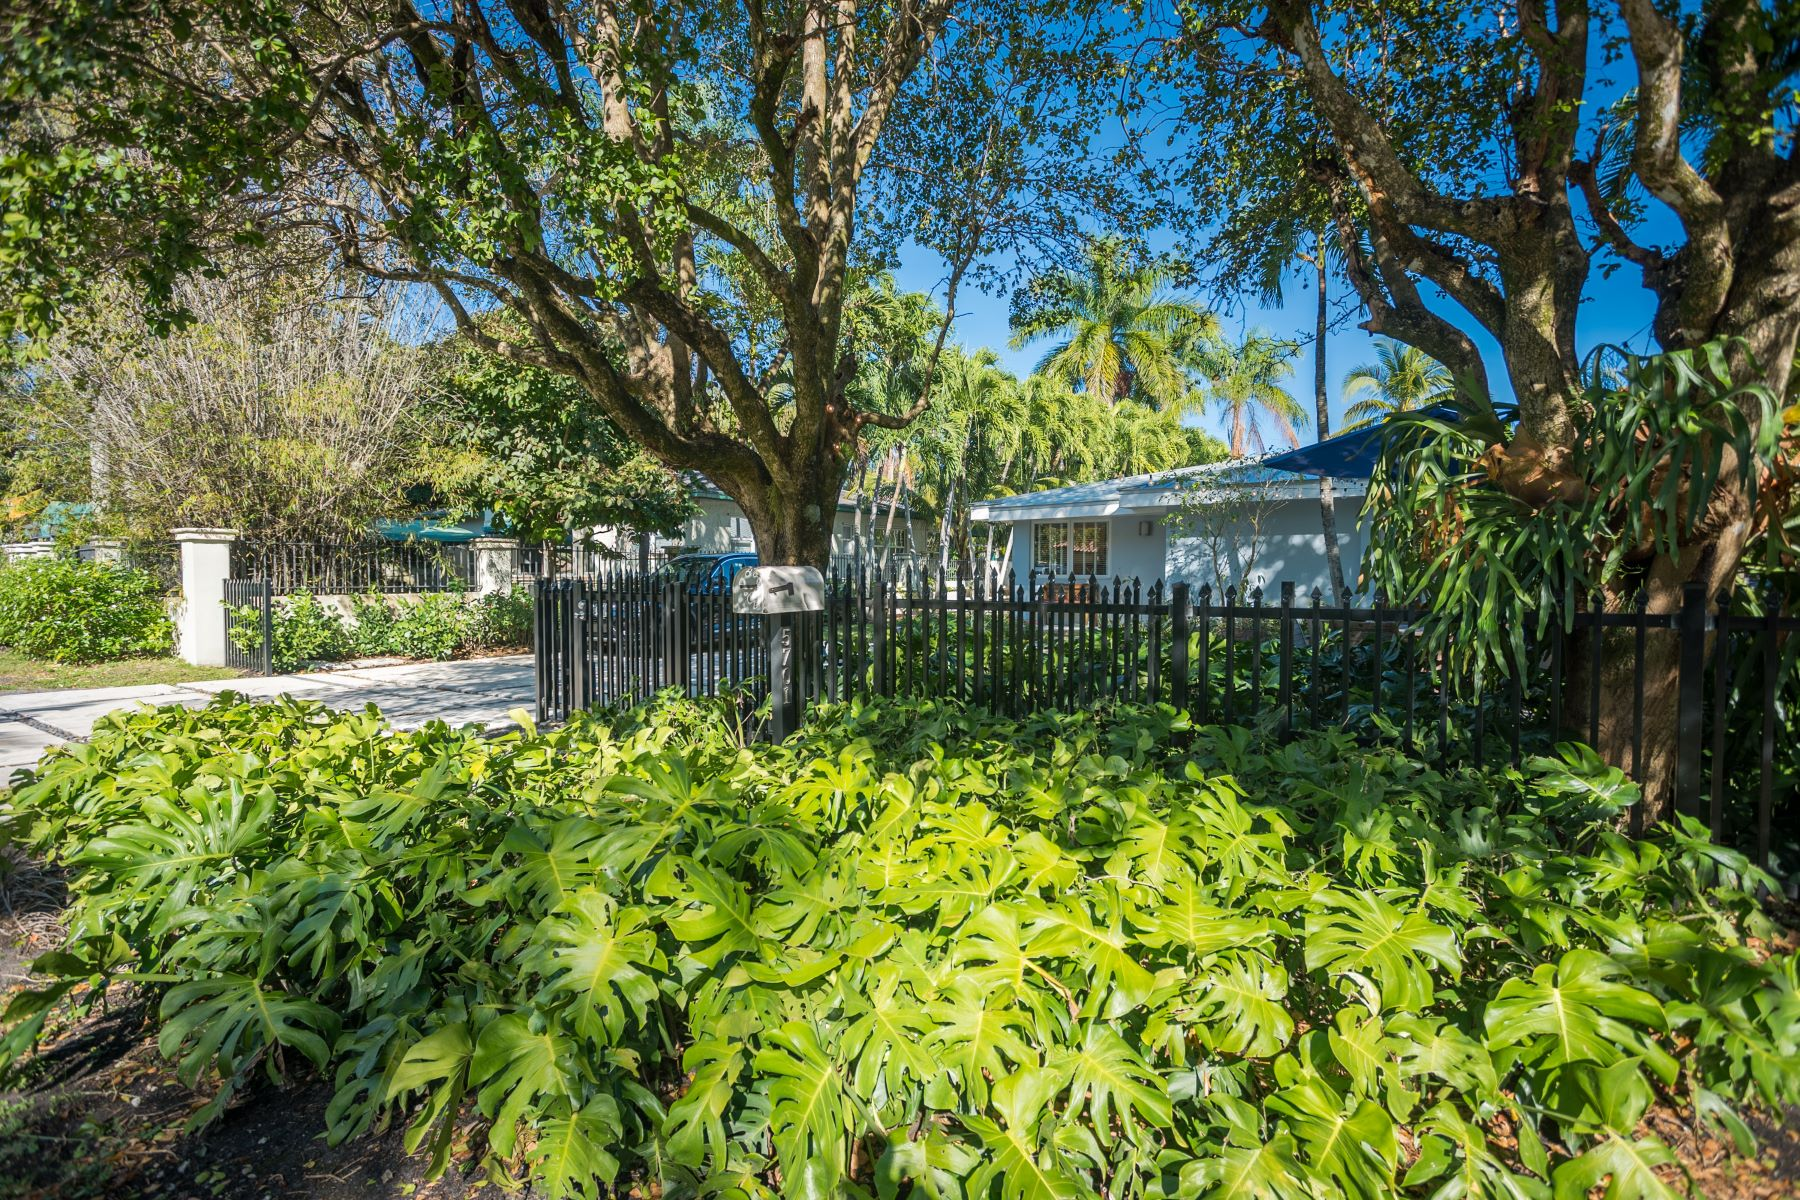 Single Family Home for Sale at 5701 Sw 83rd St South Miami, Florida, 33143 United States